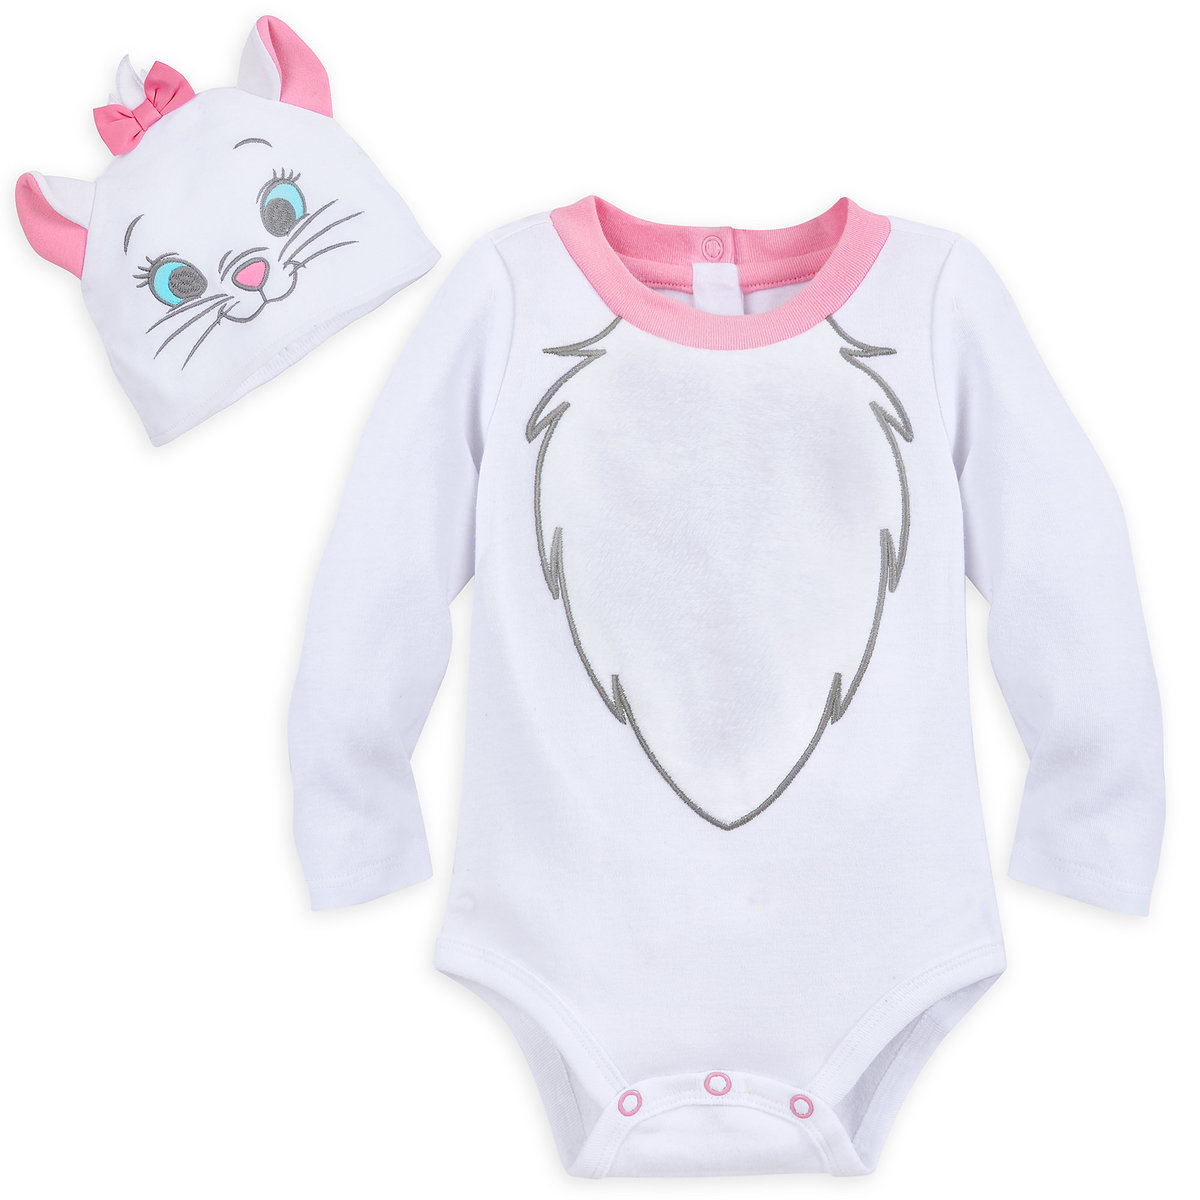 7eaa31feed613 Product Image of Marie Costume Bodysuit Set for Baby # 1